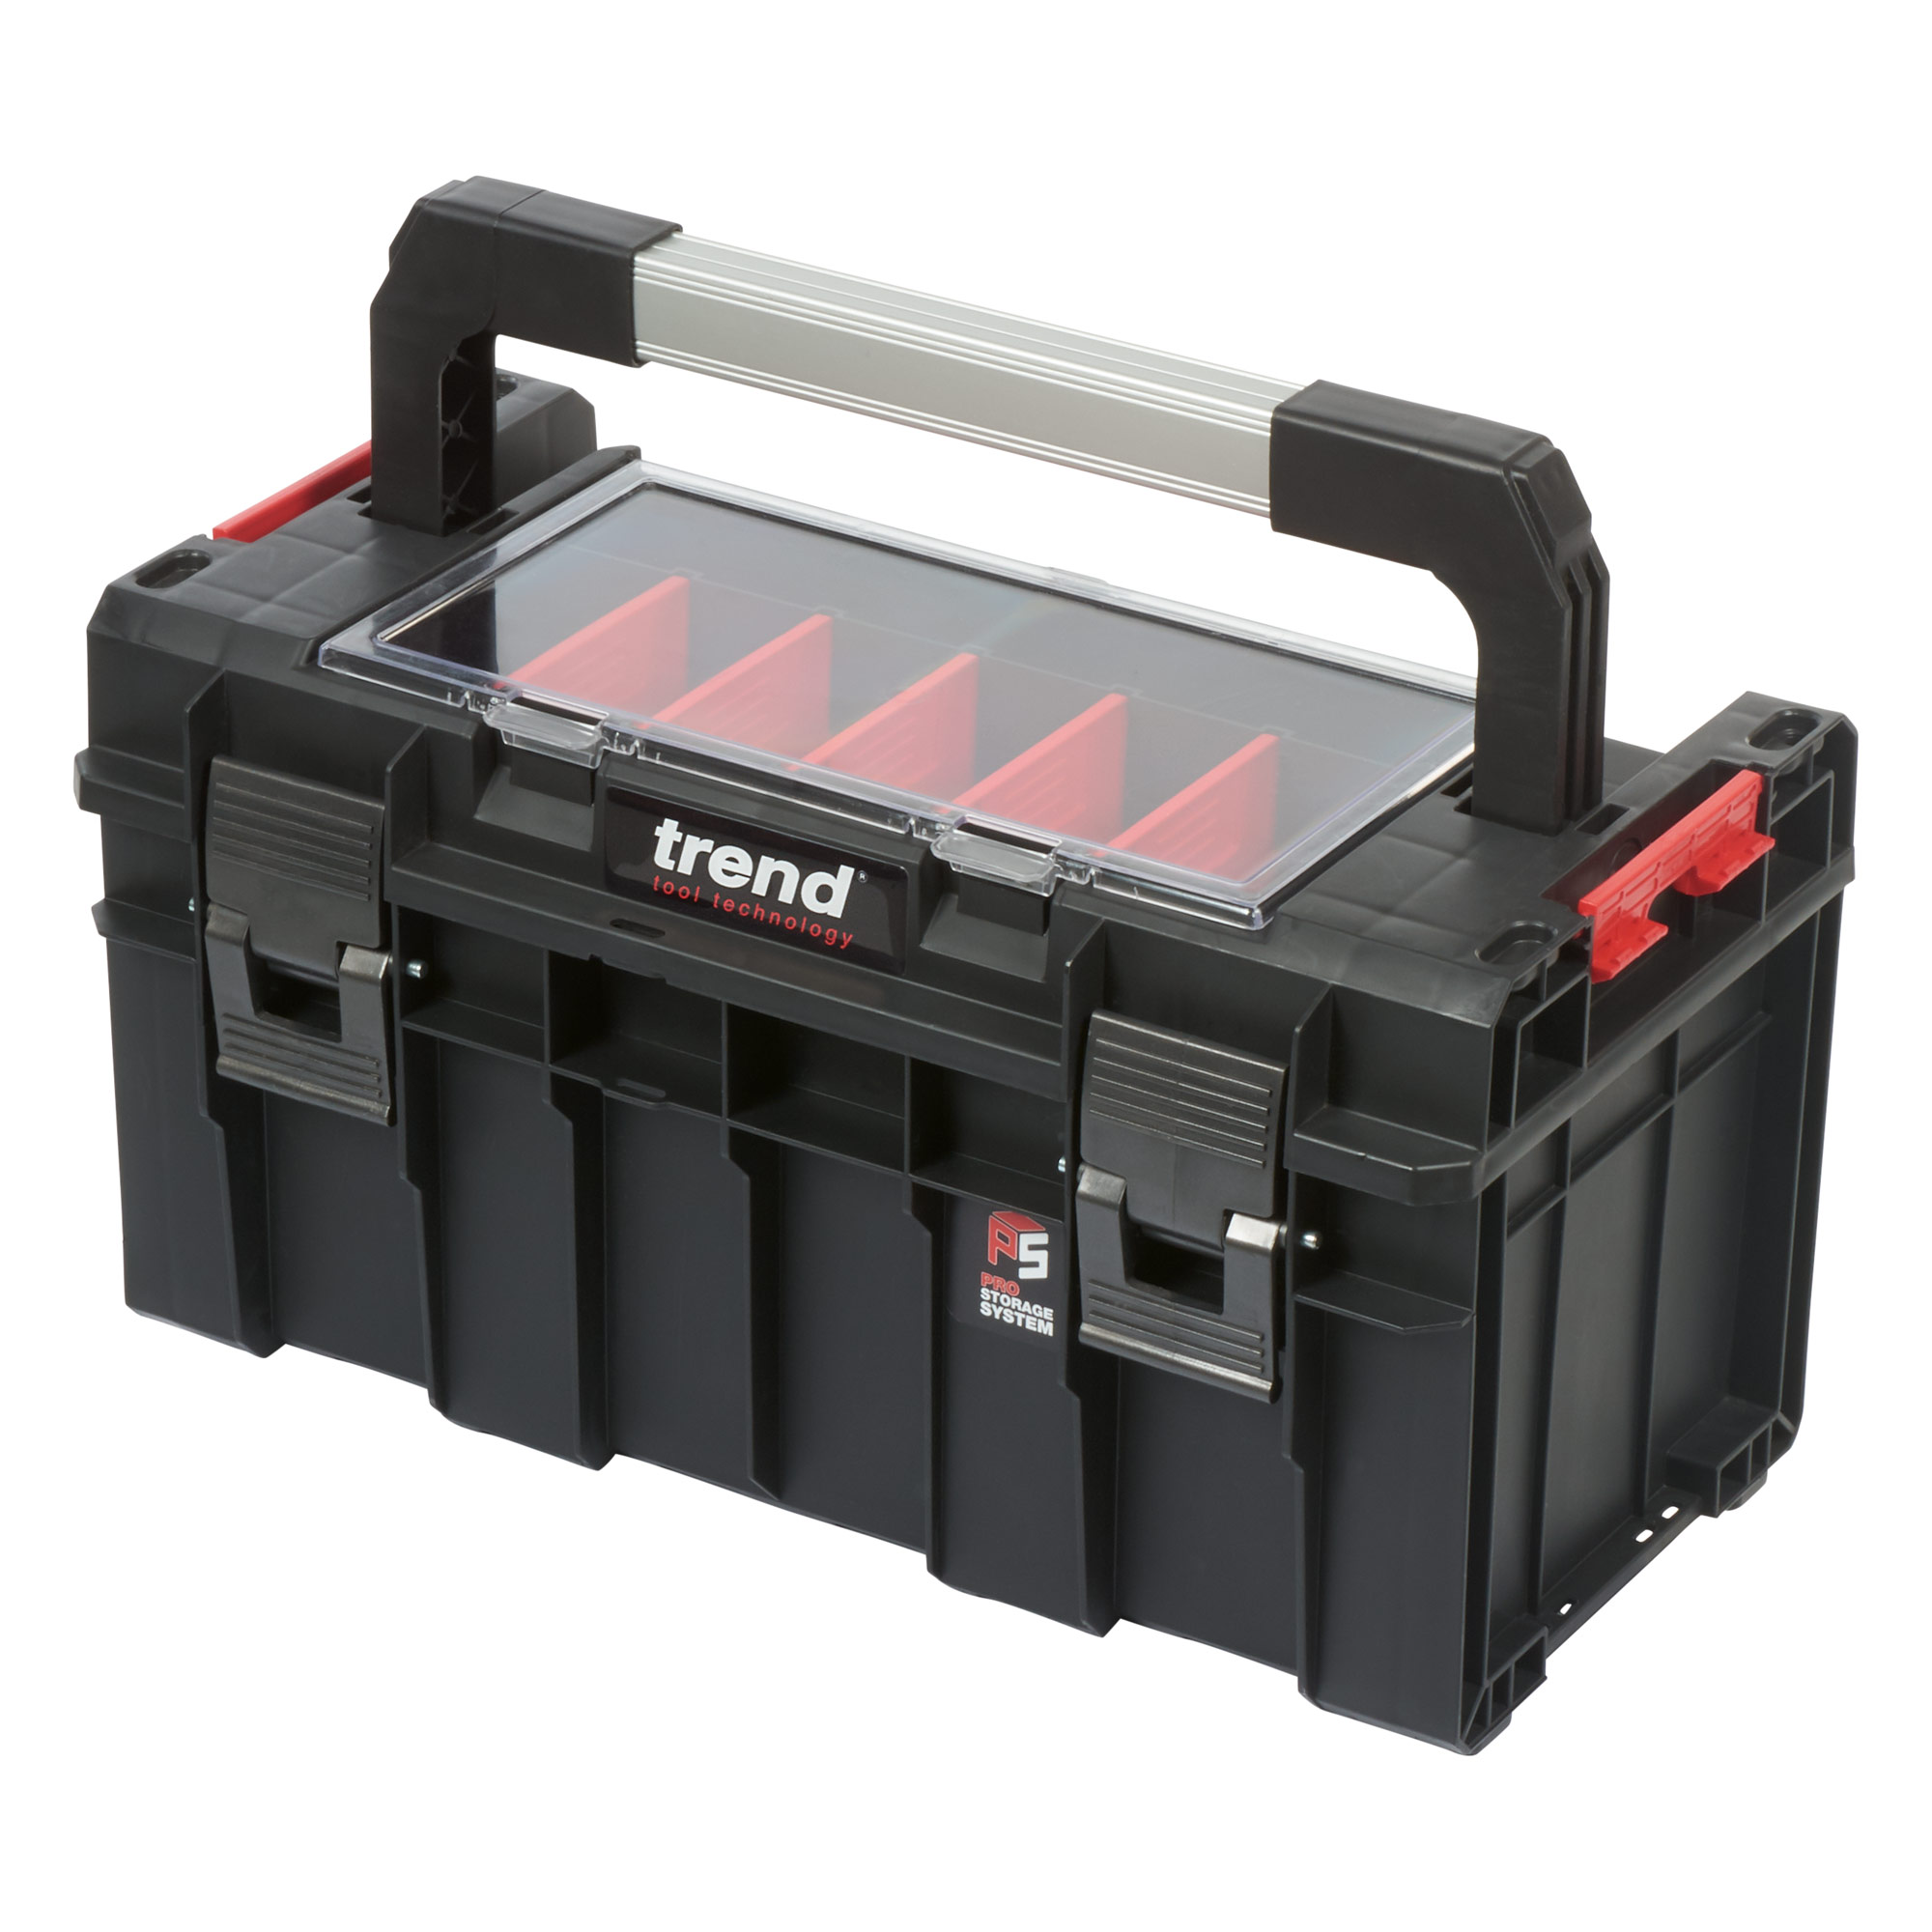 Trend MS//P//200TD Modular Storage Pro Case Toolbox